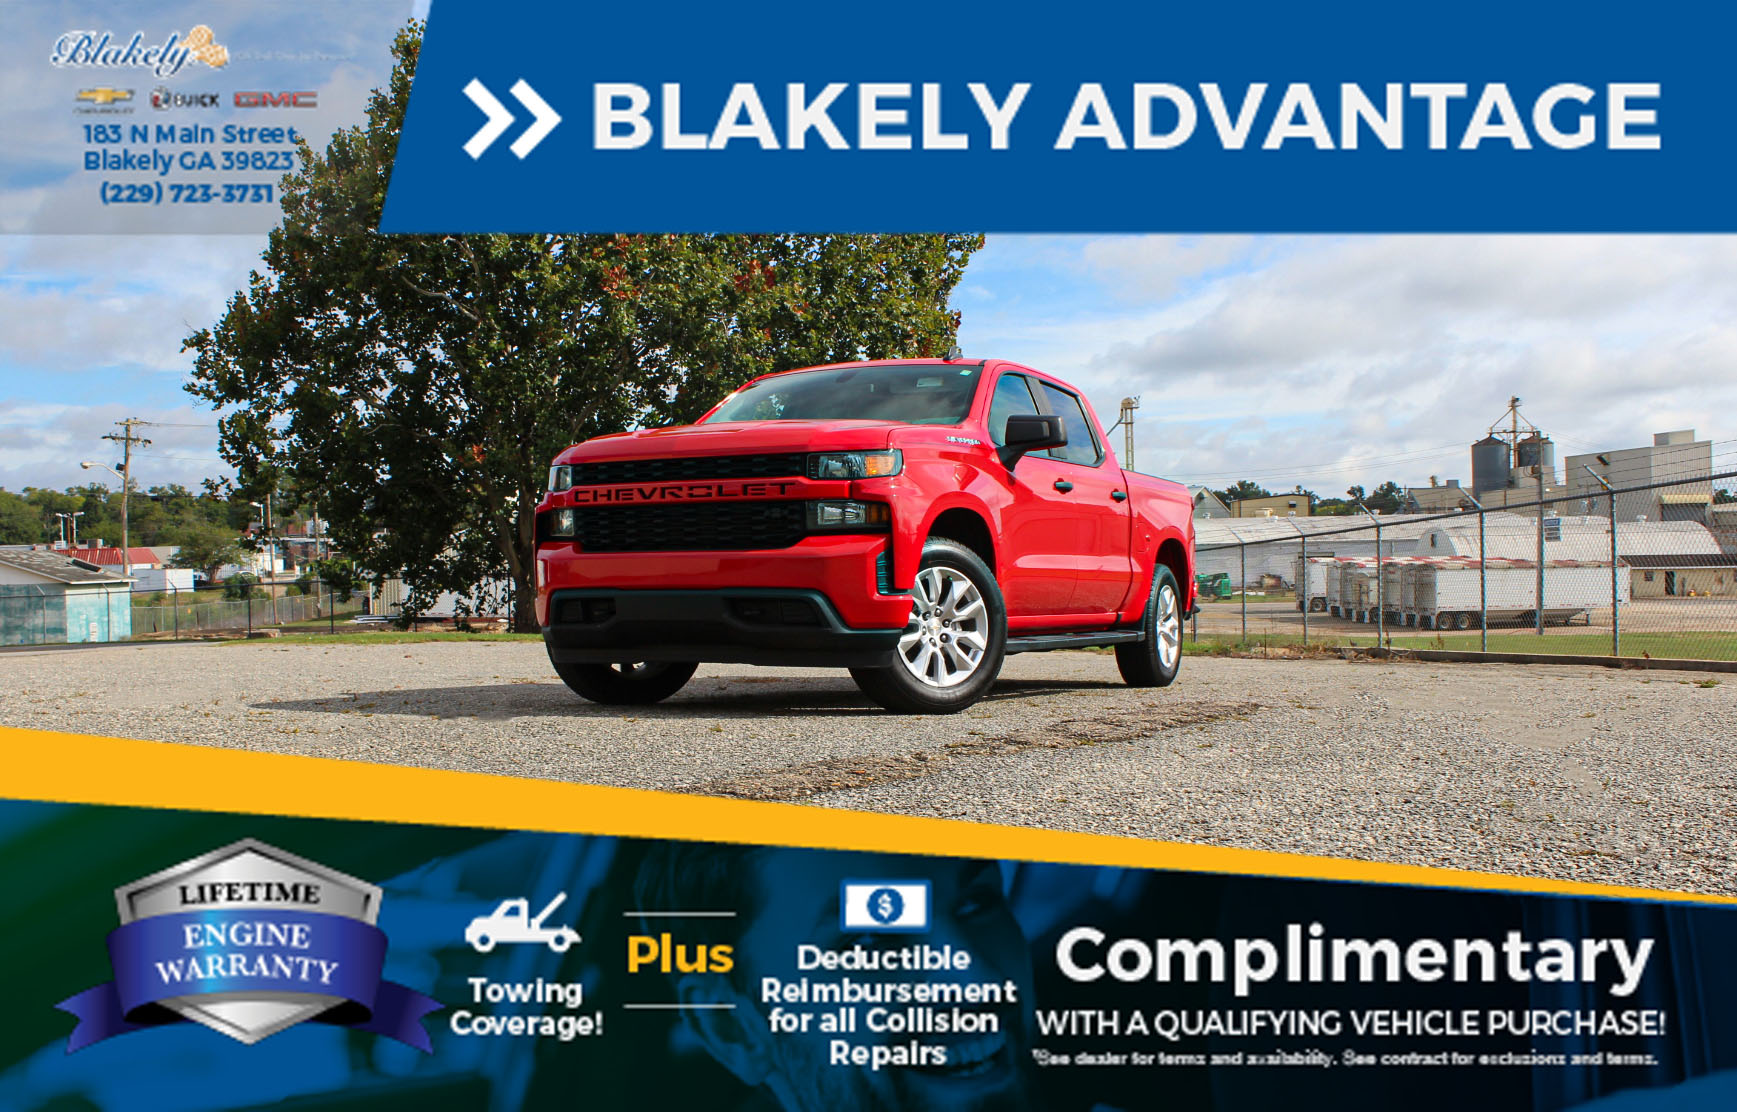 Pre Owned Vehicles For Sale In Blakely Ga